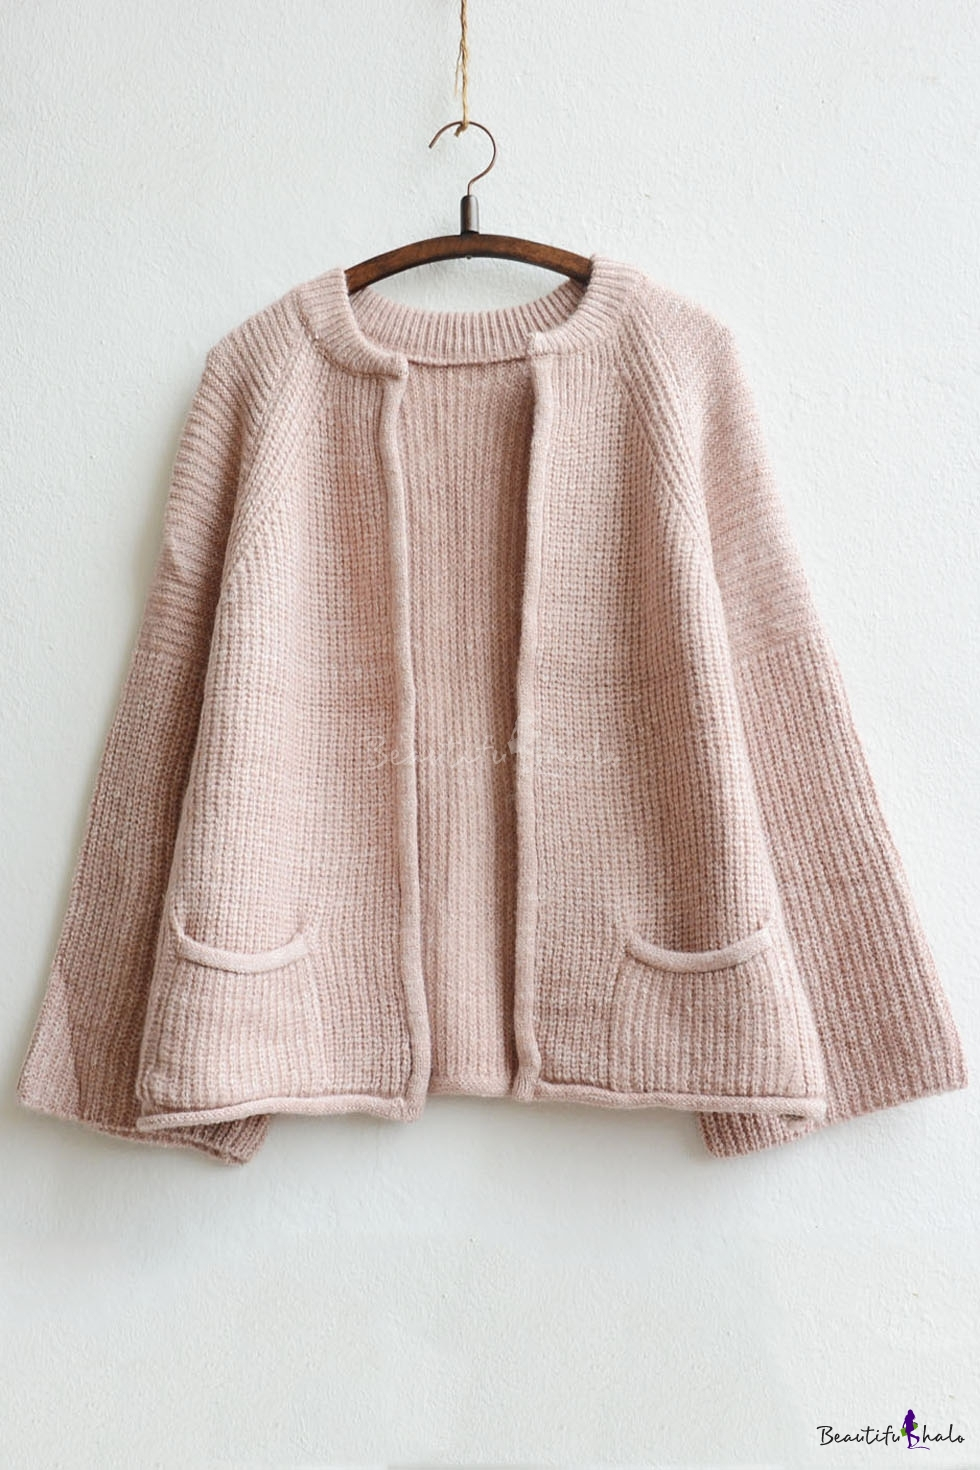 Buy Women's Front Pocket Round Neck Knitwear Cardigan